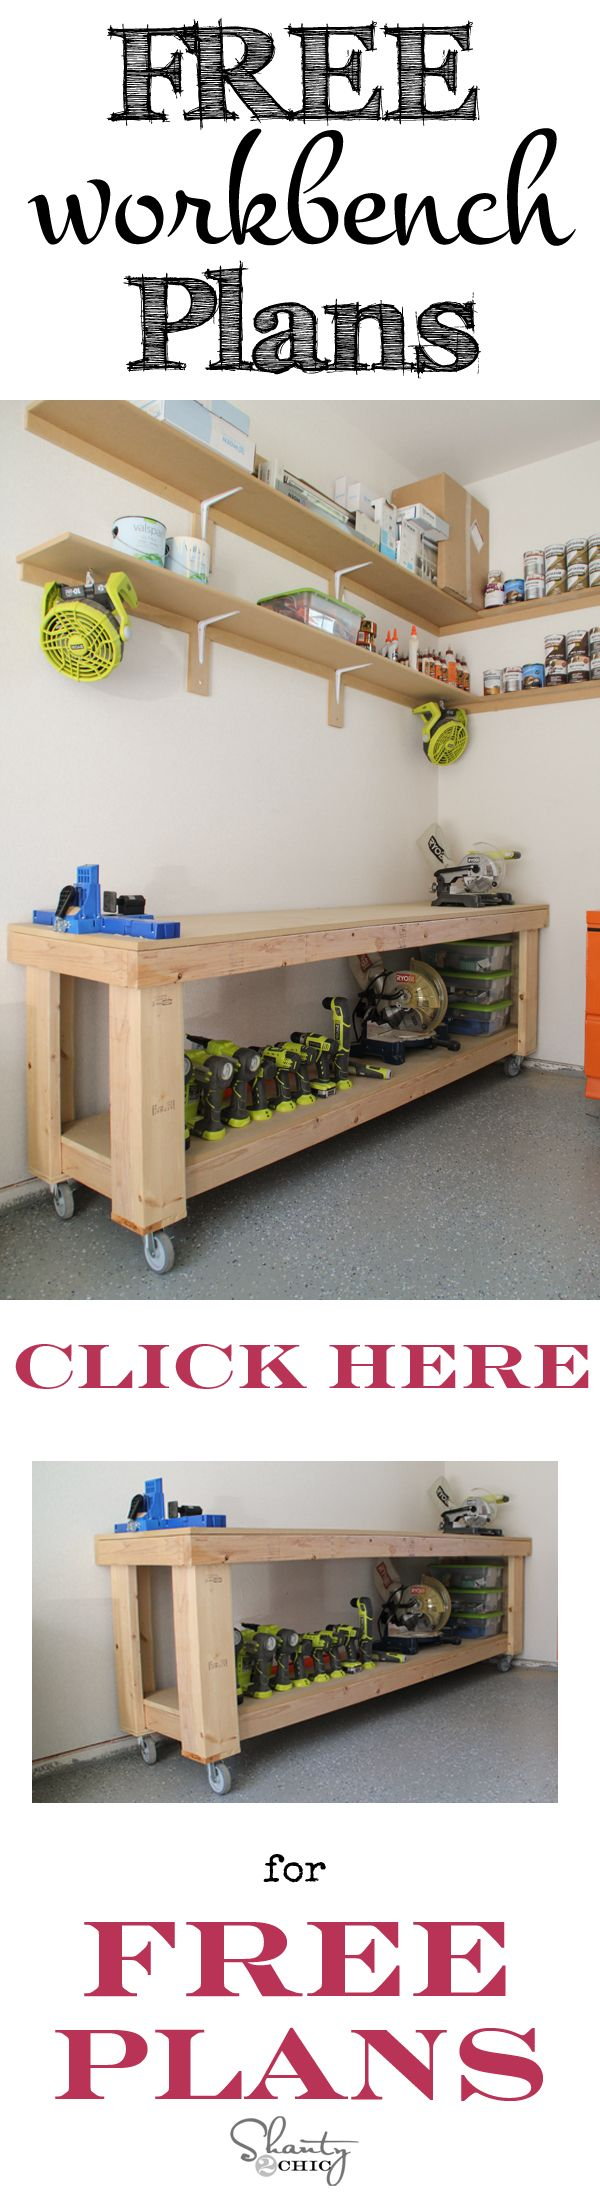 DIY Workbench   Free PlansBest 25  Garage workbench ideas on Pinterest   Workbench ideas  . Free Plans Building Wood Workbench. Home Design Ideas